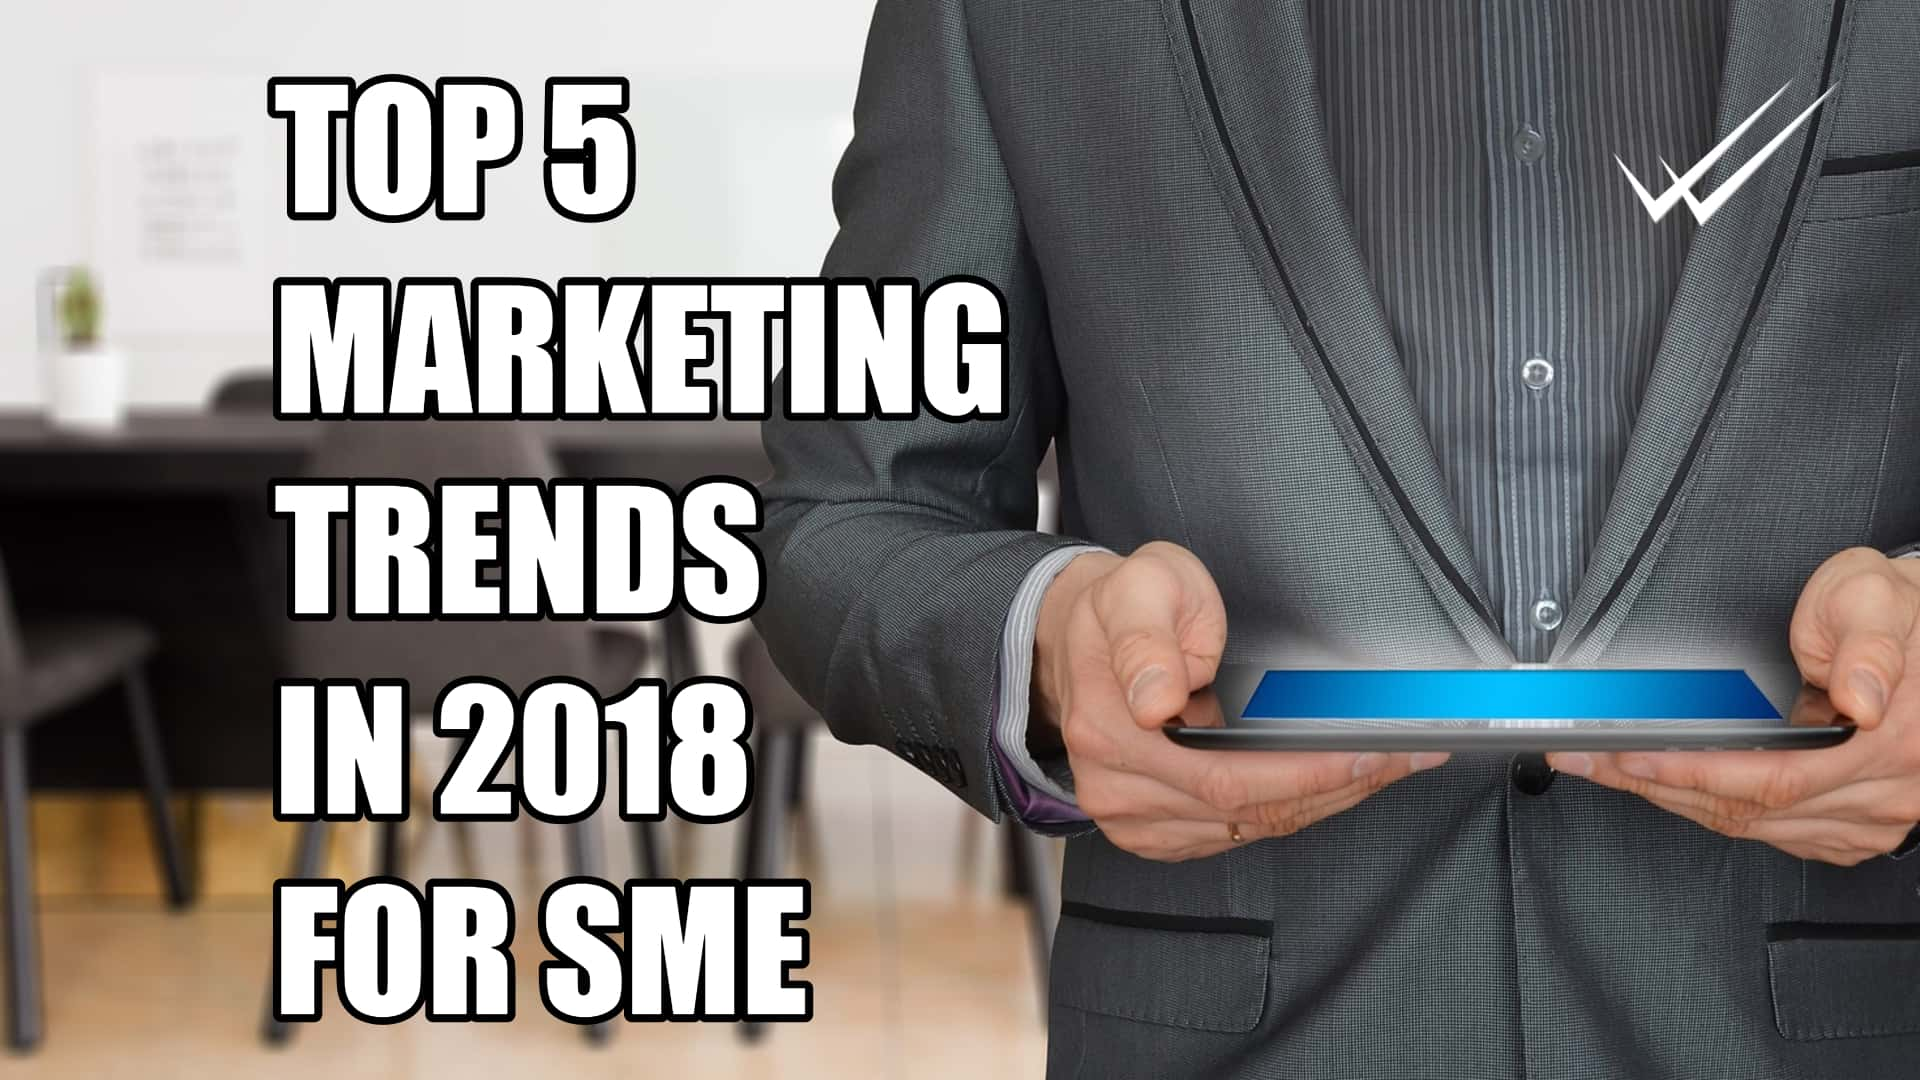 Top five marketing trends for small businesses in 2018